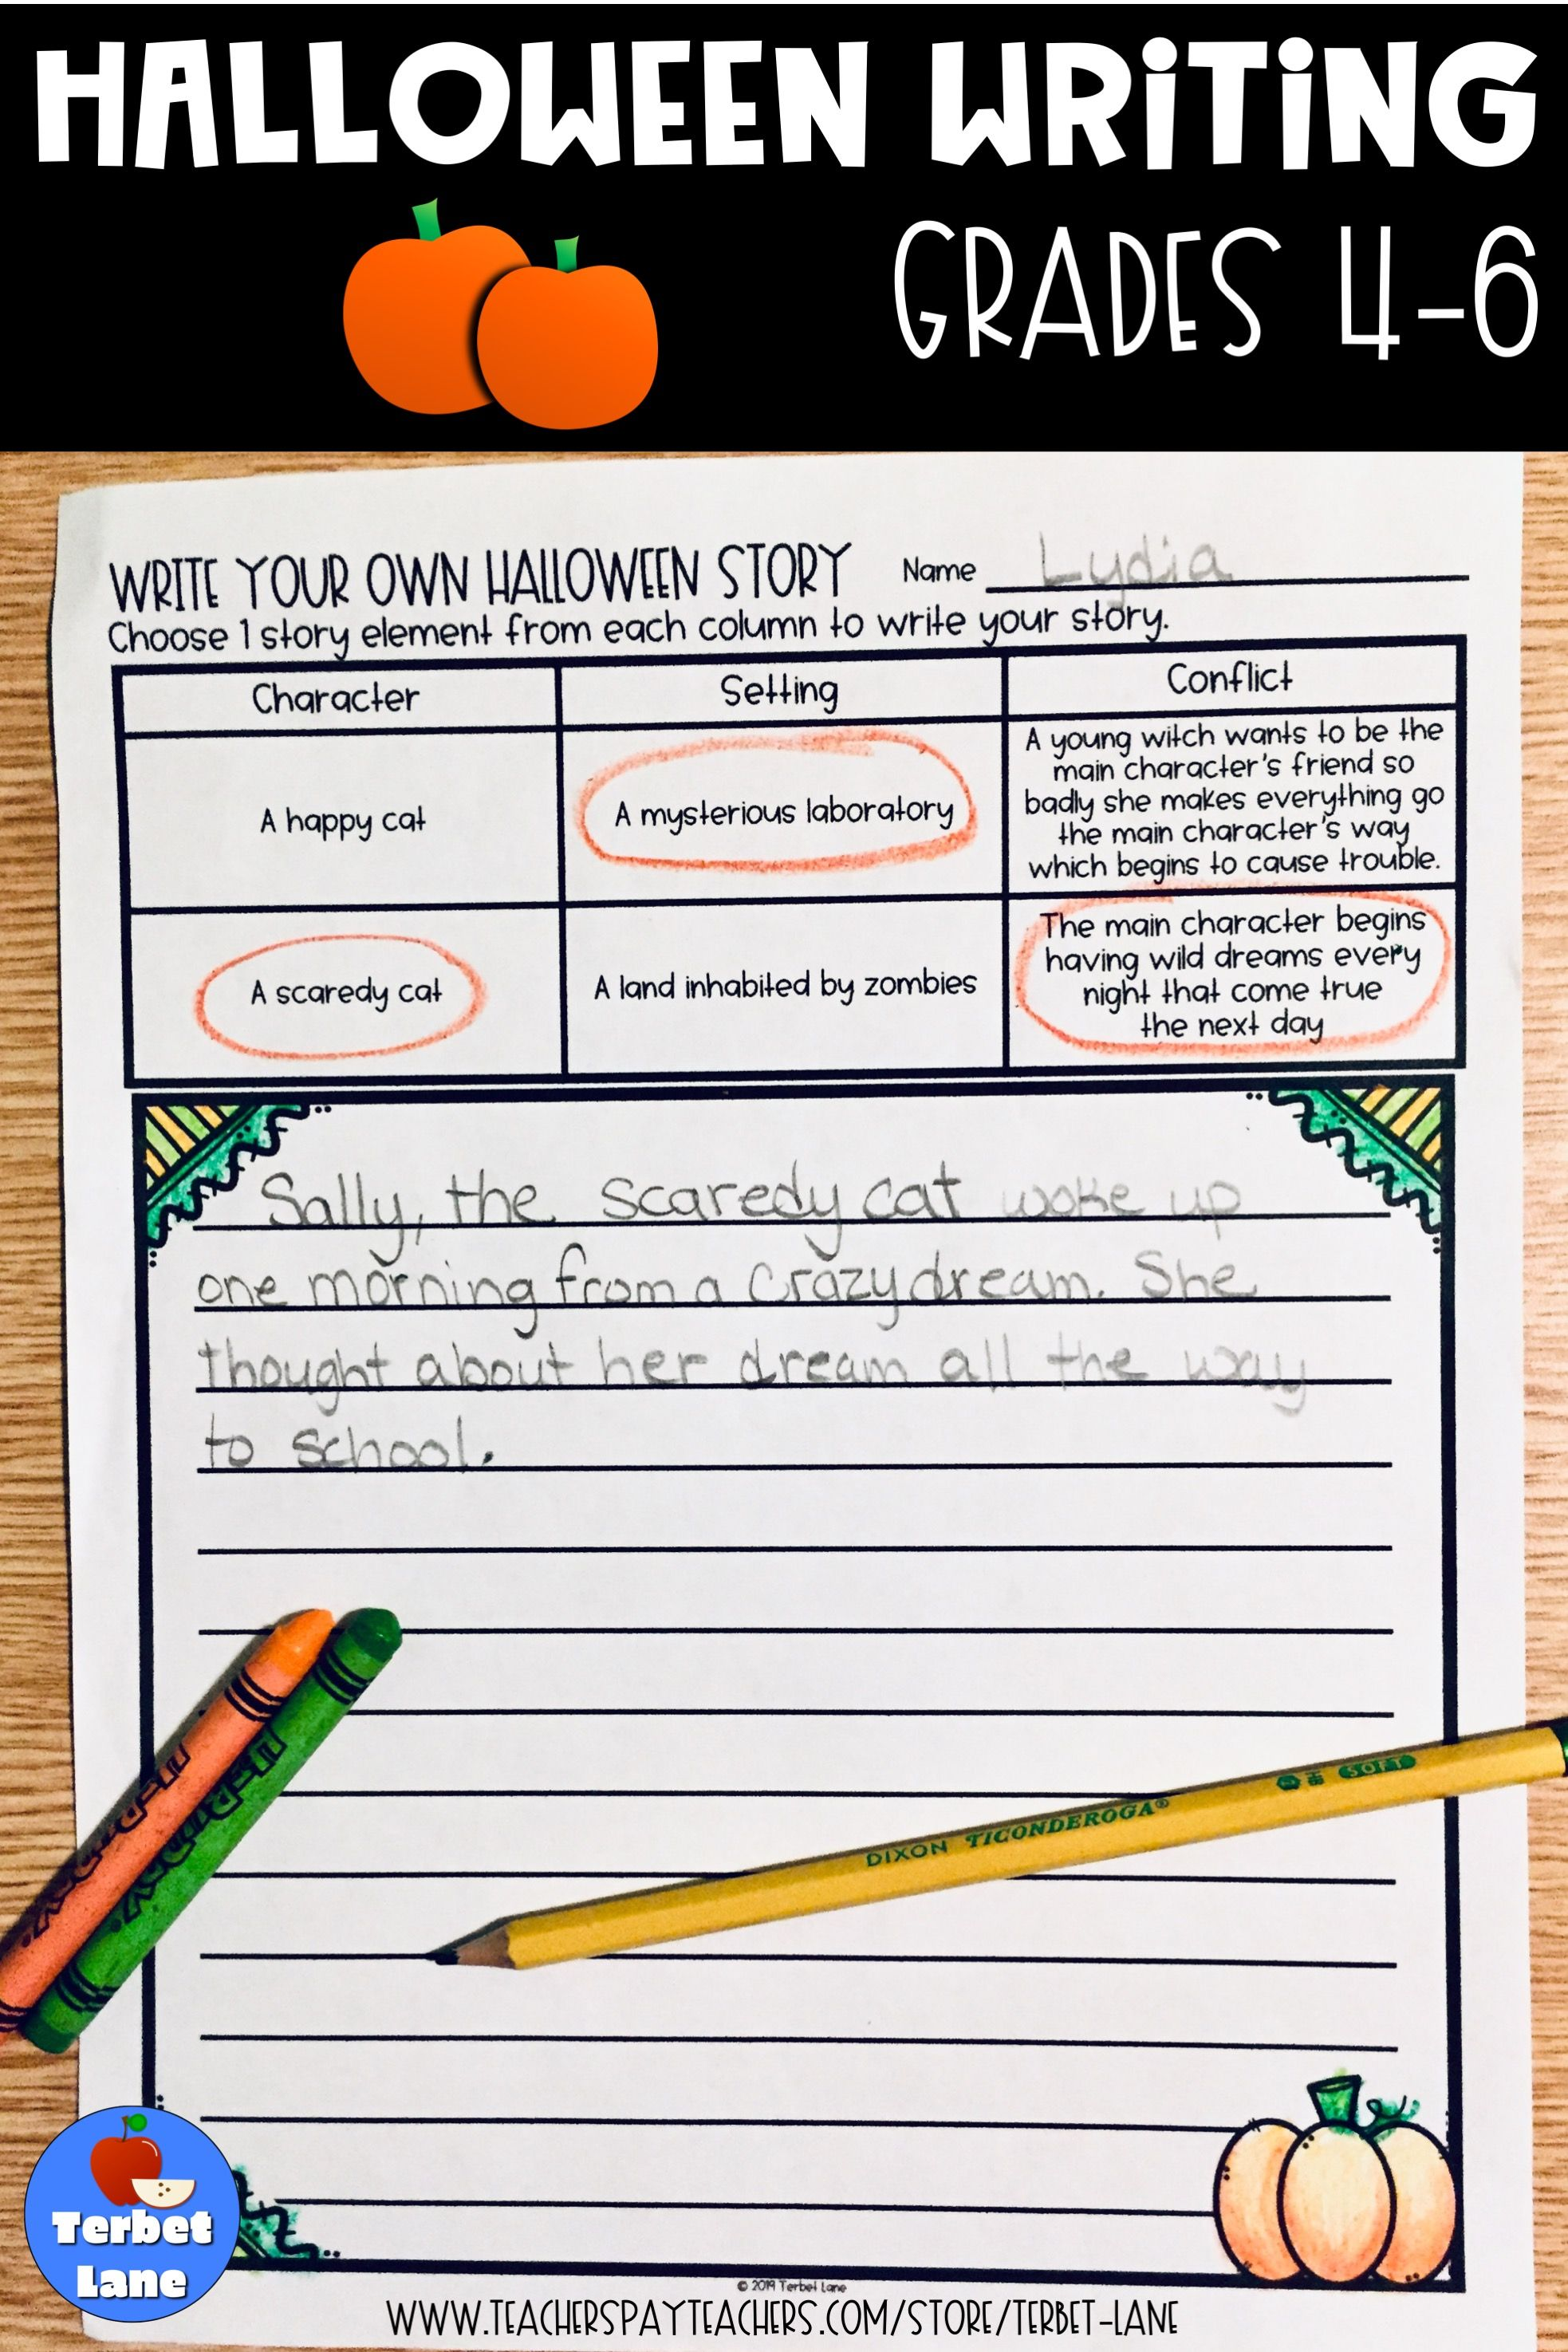 Halloween Writing Prompts With Images